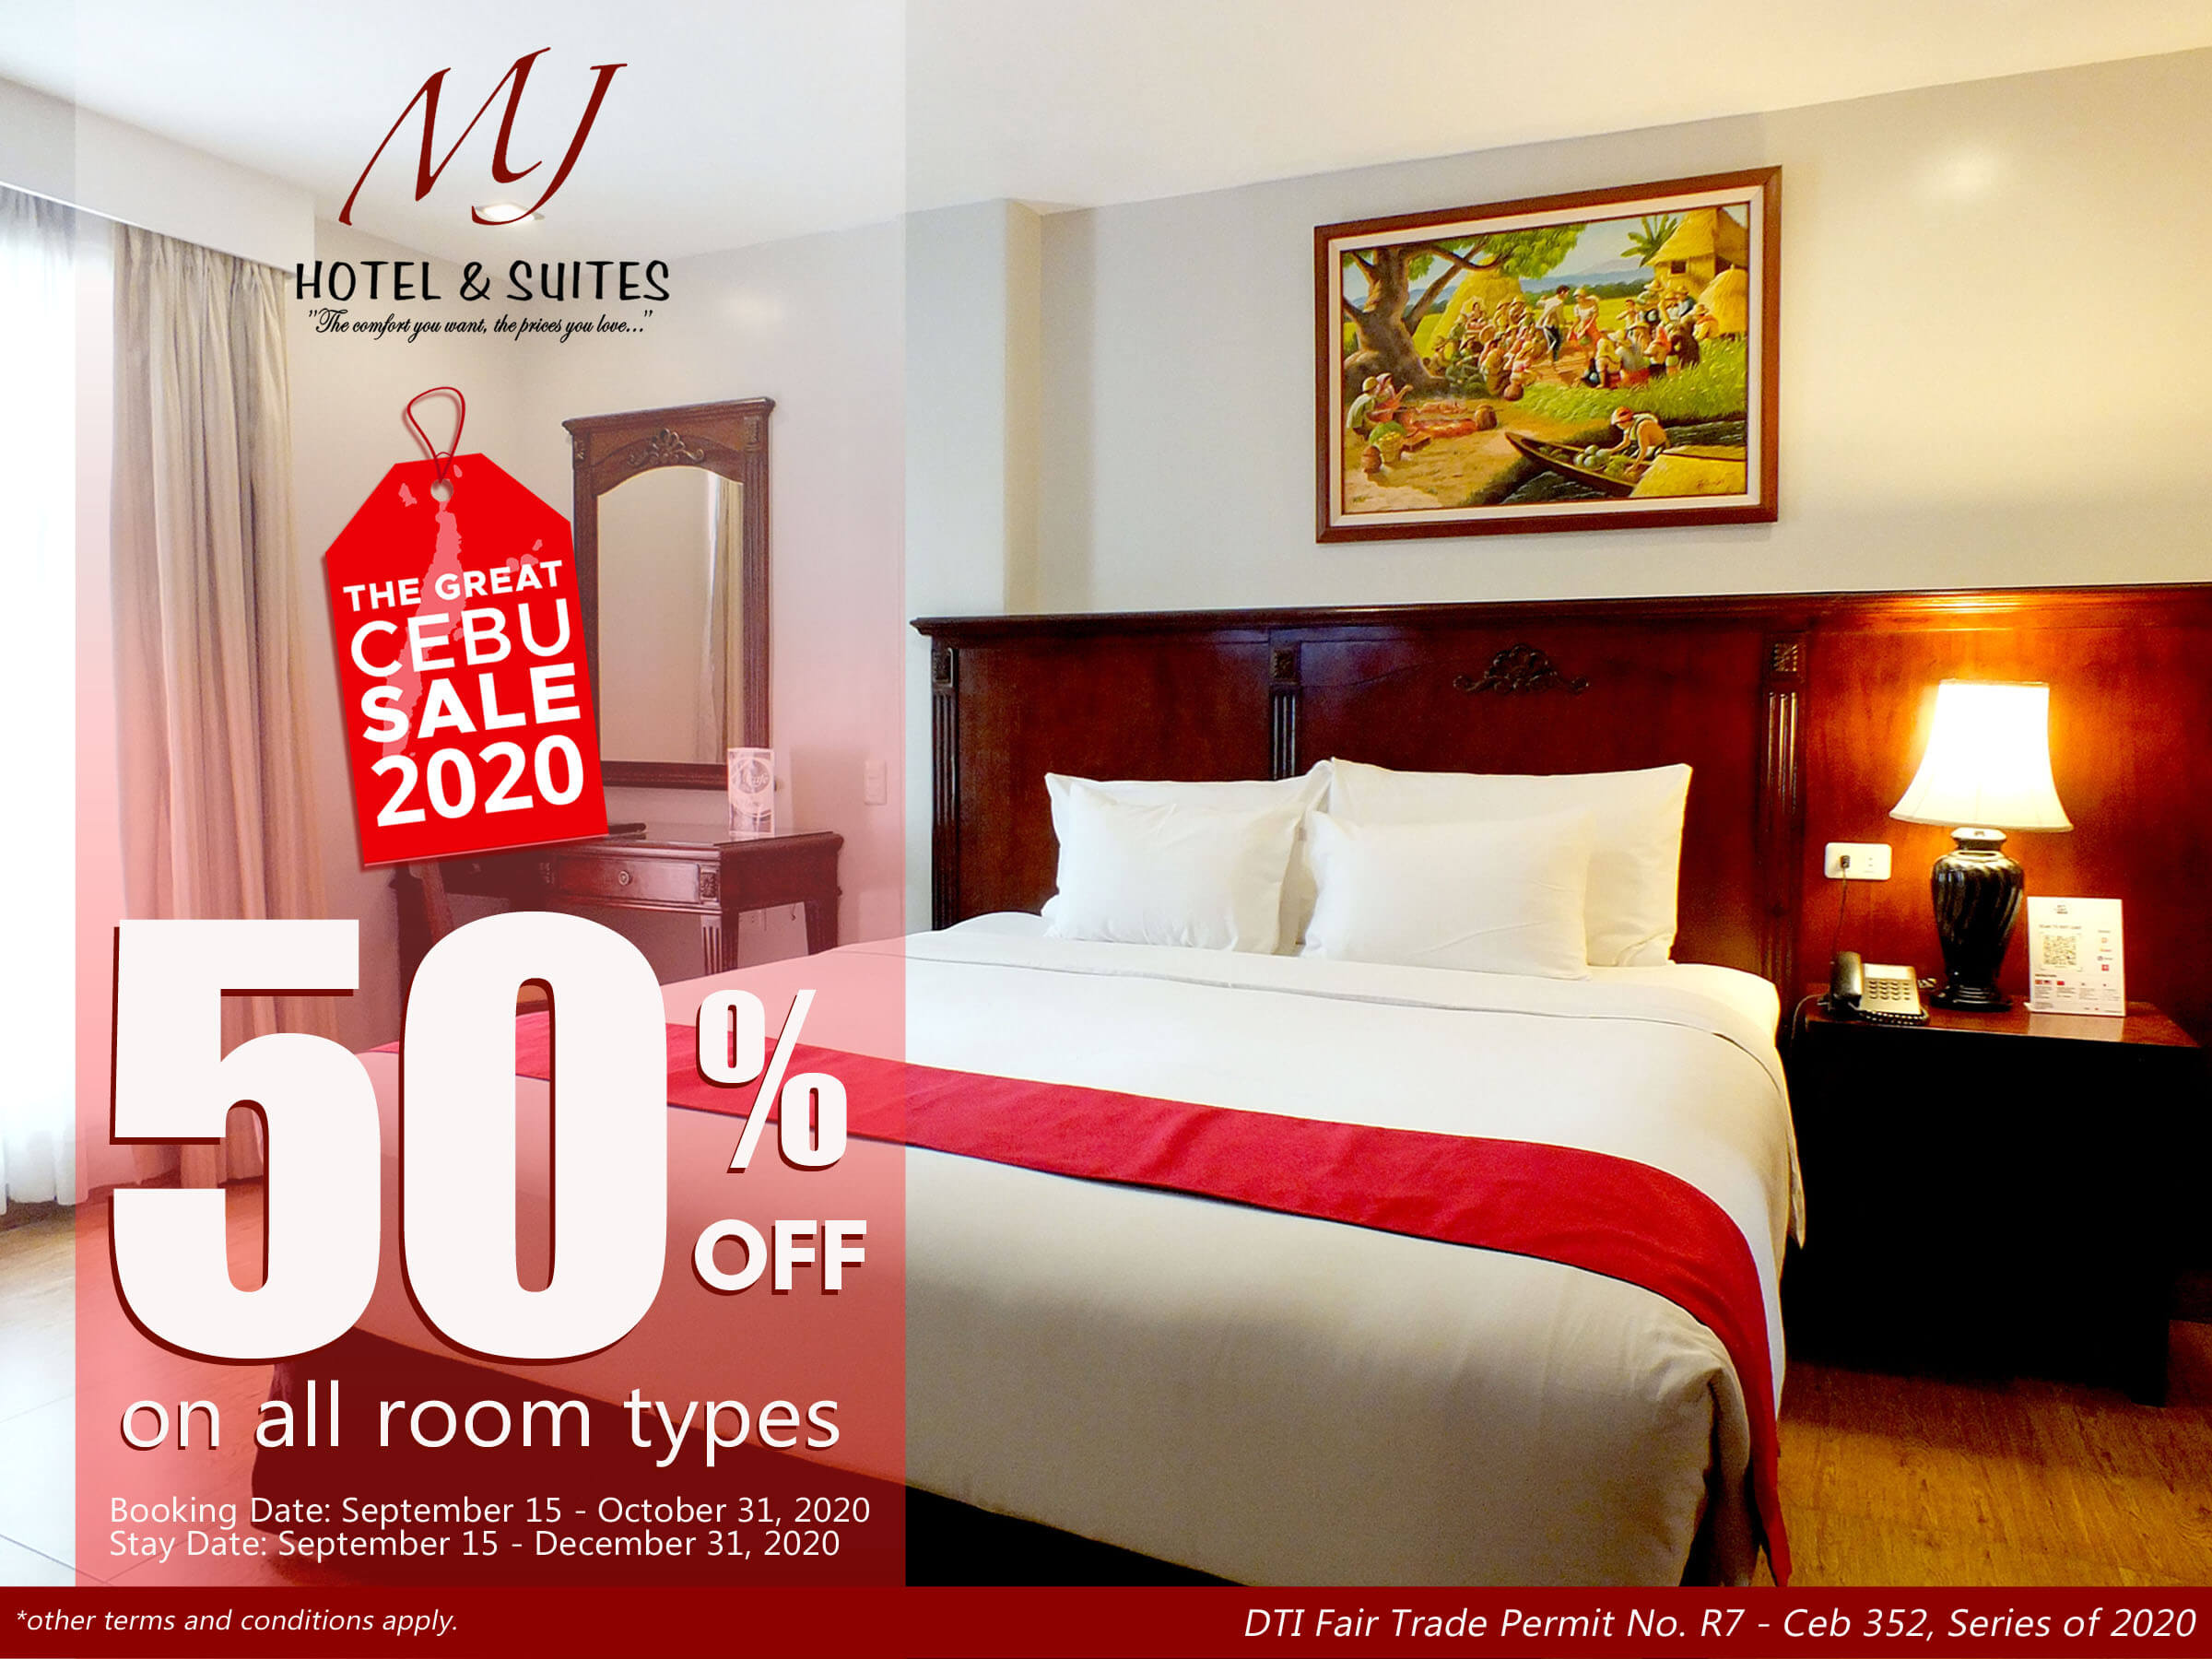 MJ Hotel & Suites offers up to 50% off on all room types